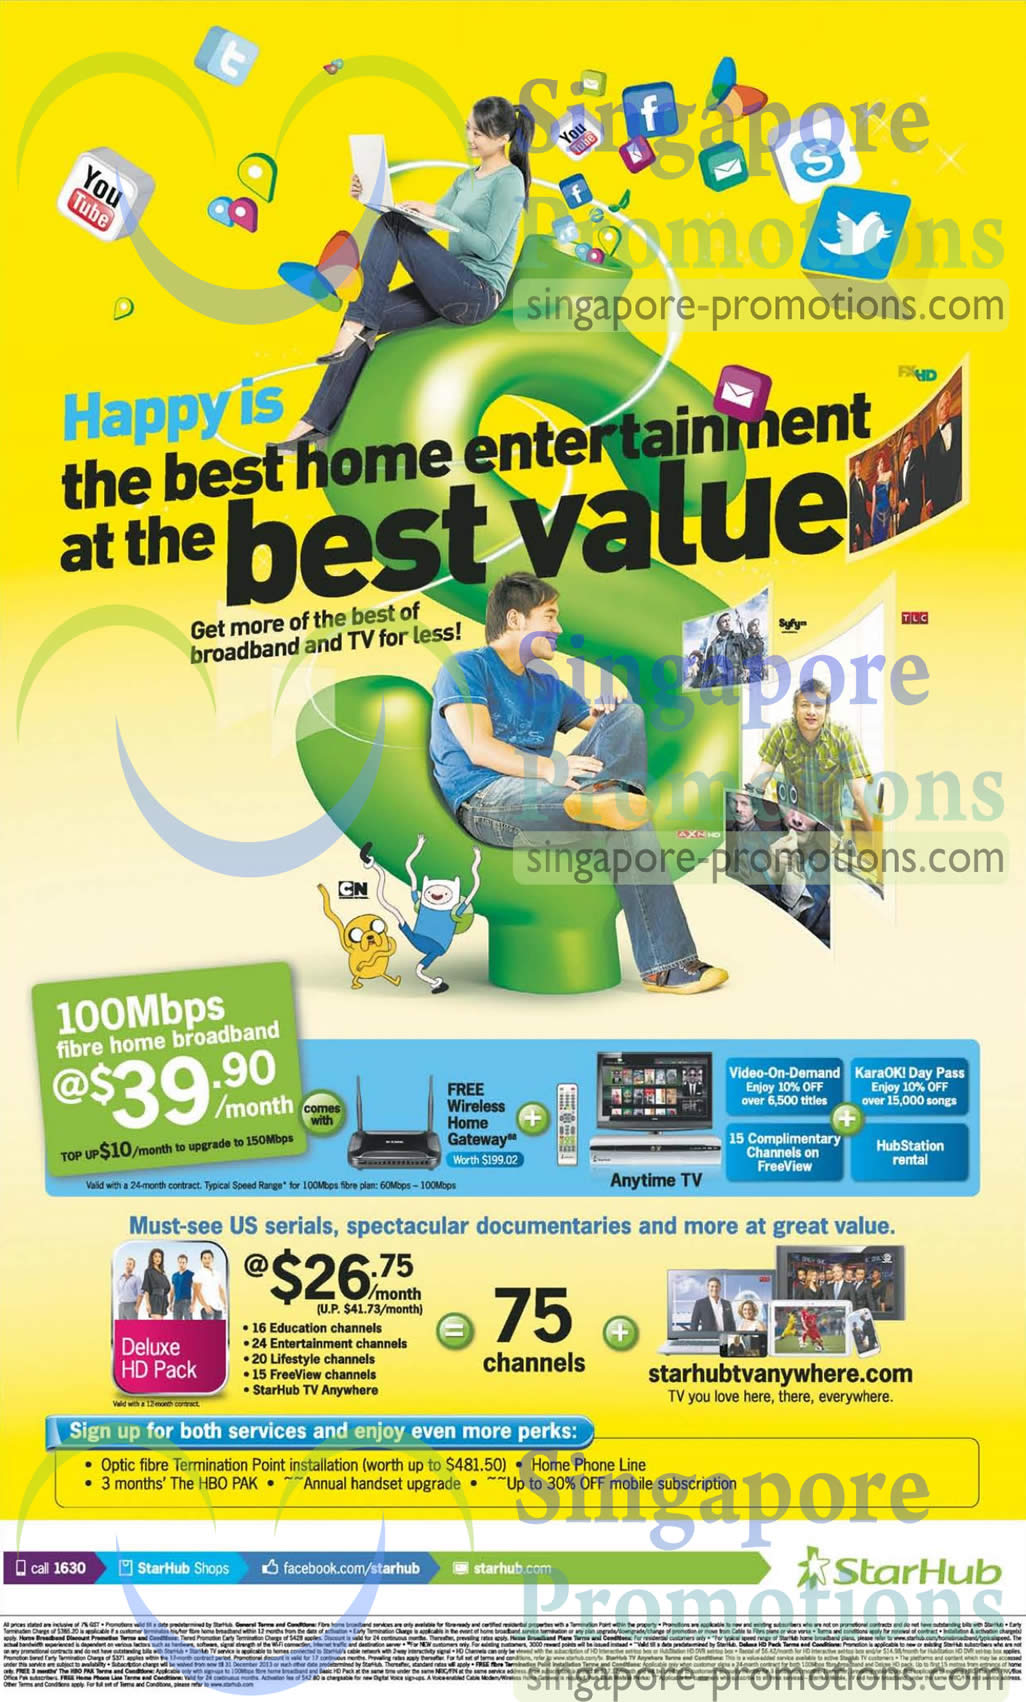 39.90 100Mbps Fibre Broadband, 150Mbps, Cable TV Deluxe HD Pack